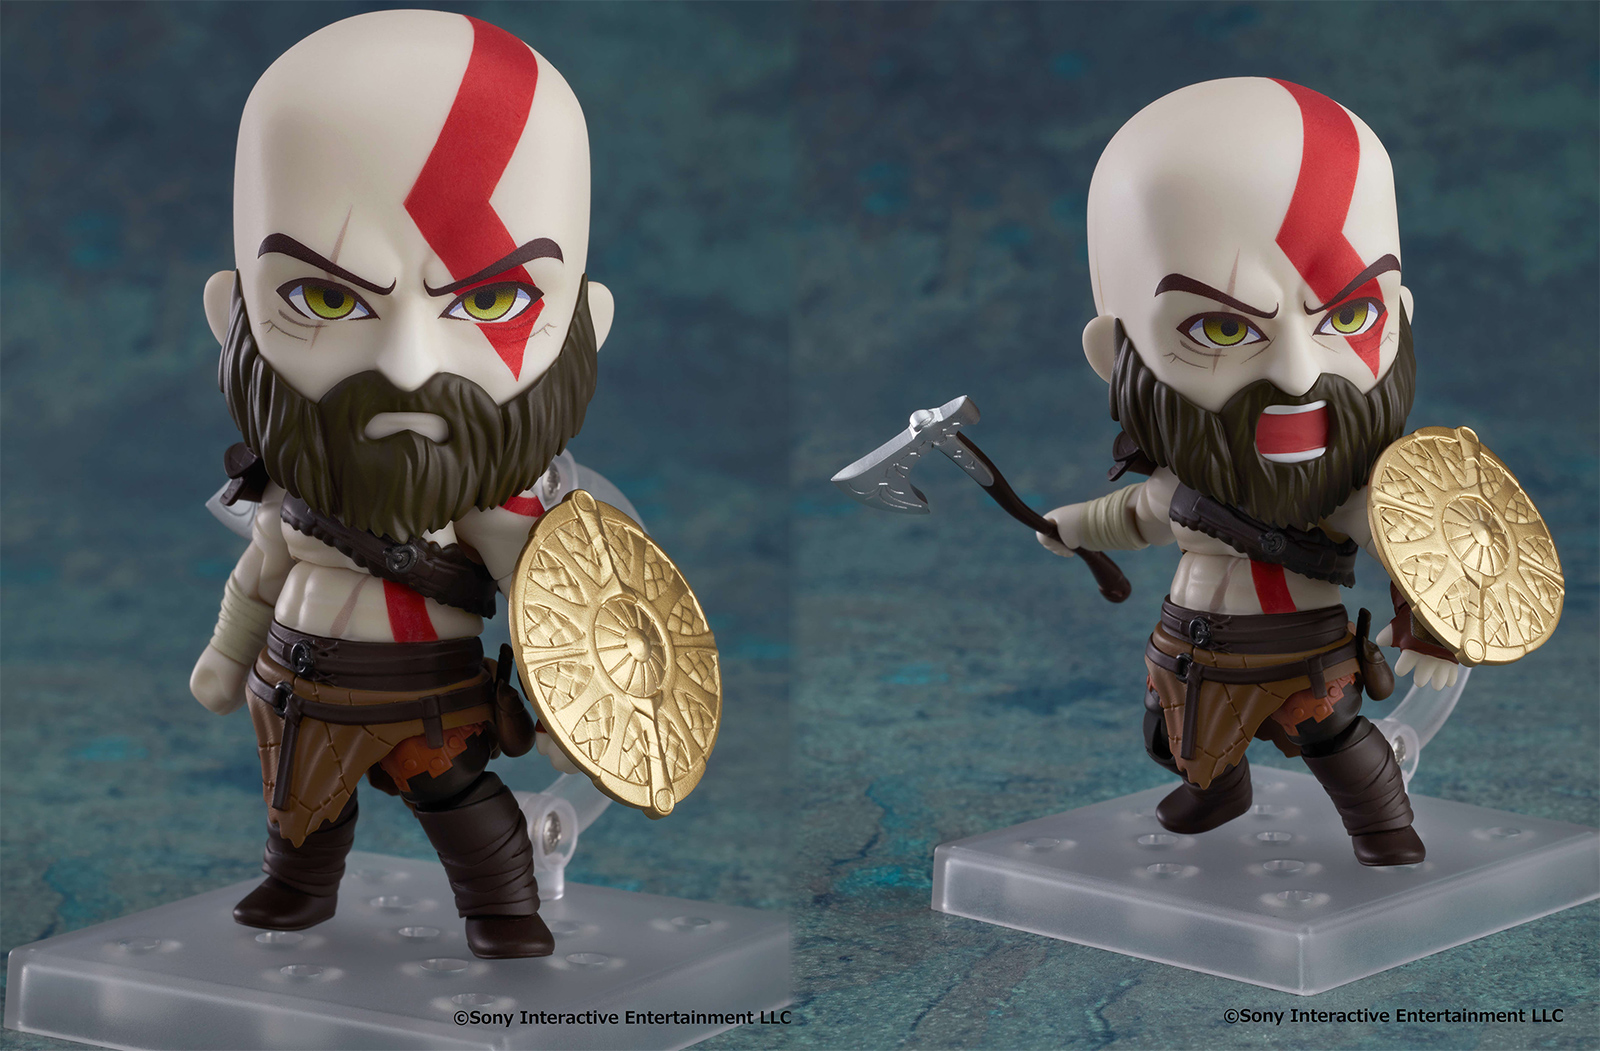 Nendoroid Kratos will be great at silently judging you from your desk screenshot